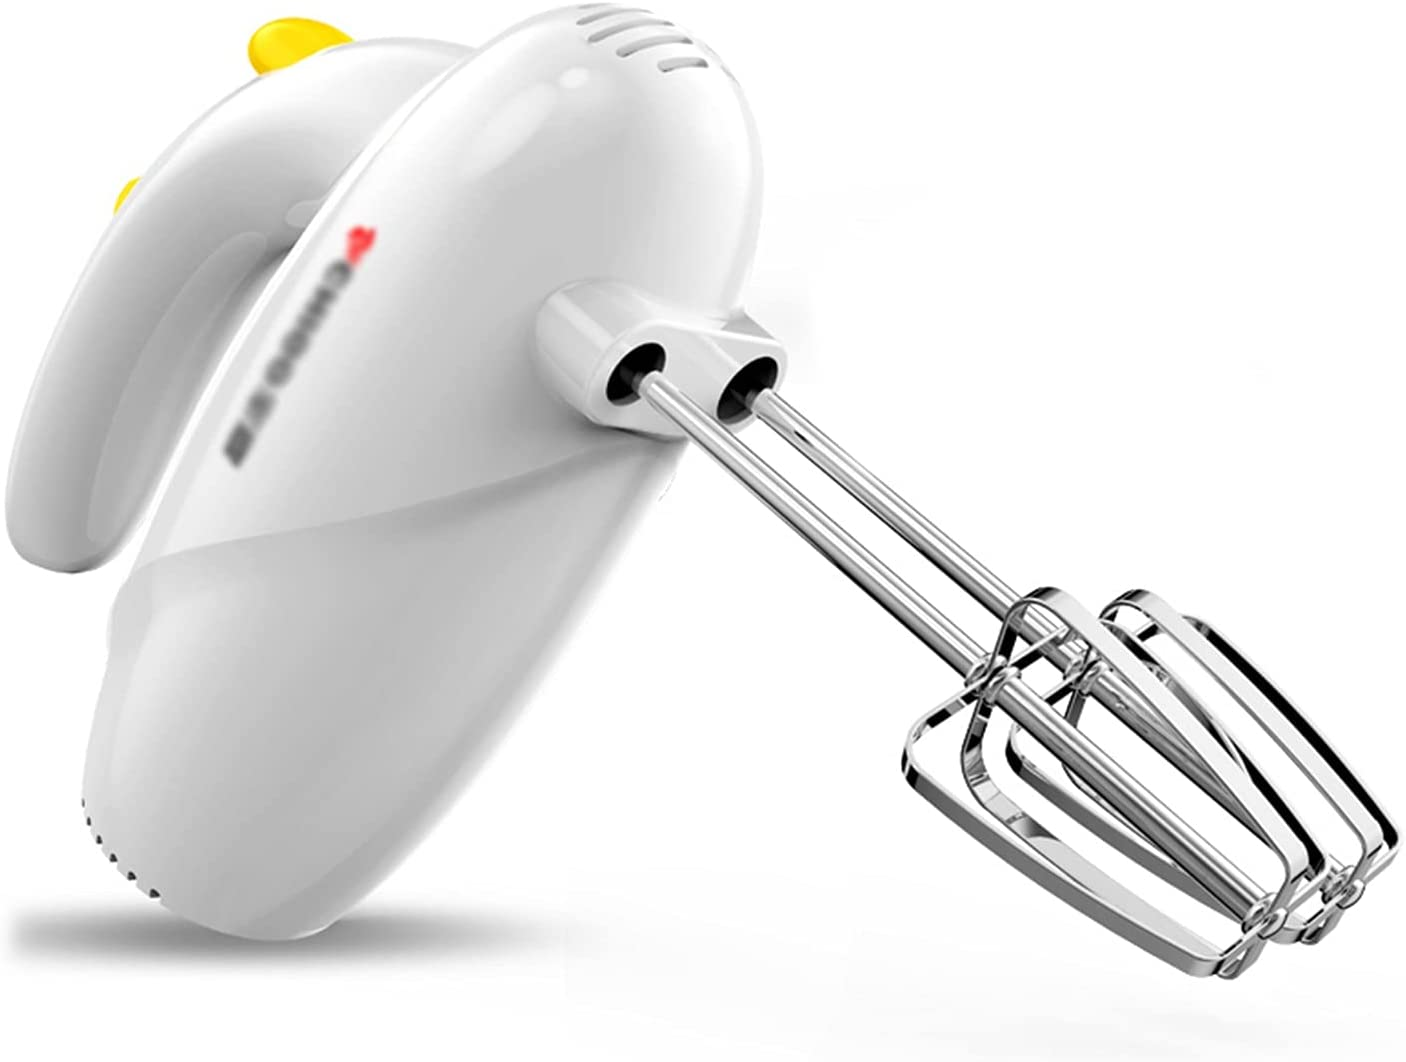 5 Speed Hand Mixer Electric Power 120W favorite Outlet SALE Baking For Whisk